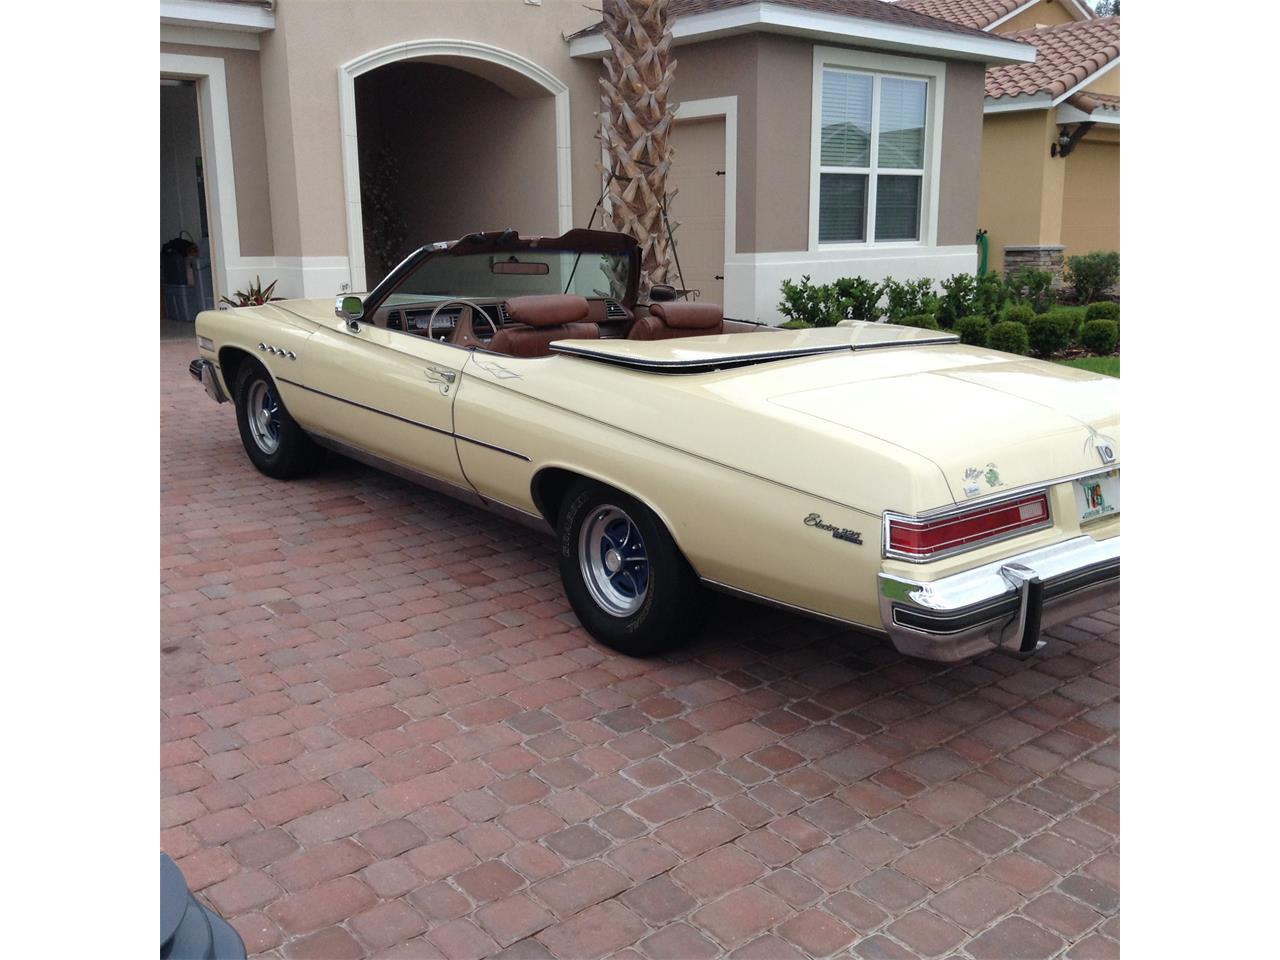 Large Picture of '75 Buick Electra located in Poinciana Florida - $30,000.00 Offered by a Private Seller - LEM0